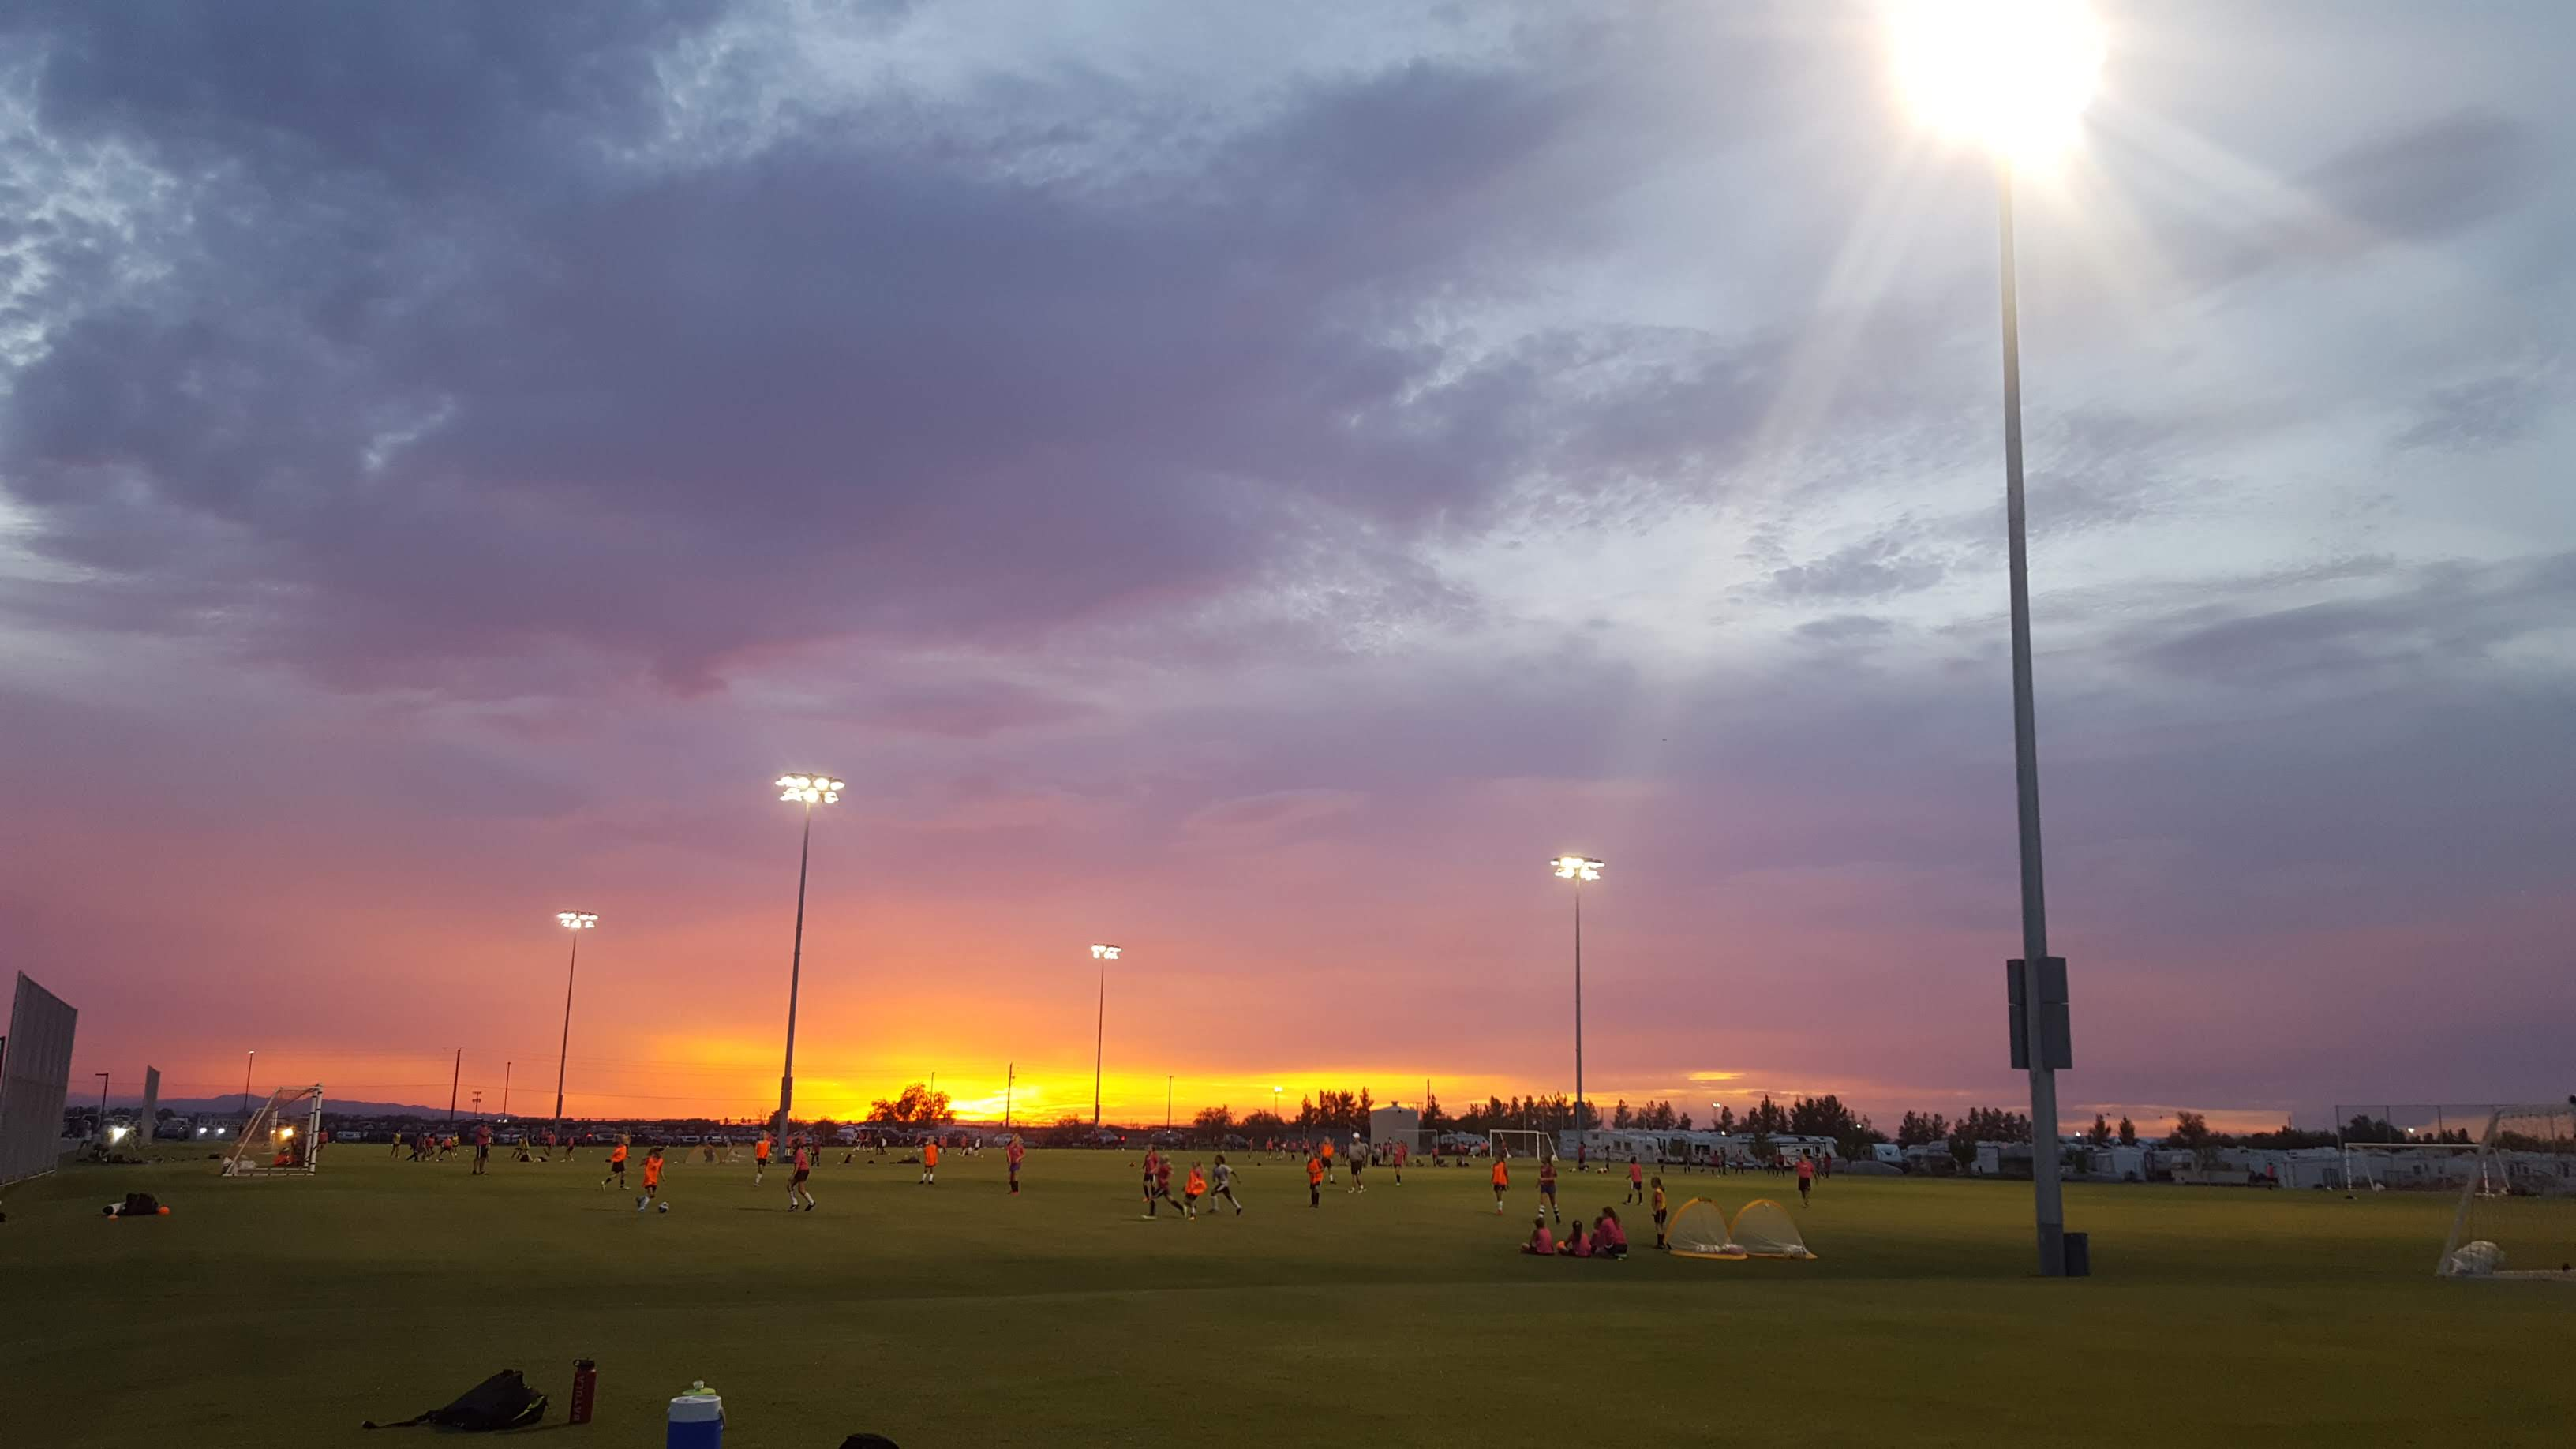 The sun sets on the NSFC fields in Mesa, Arizona.